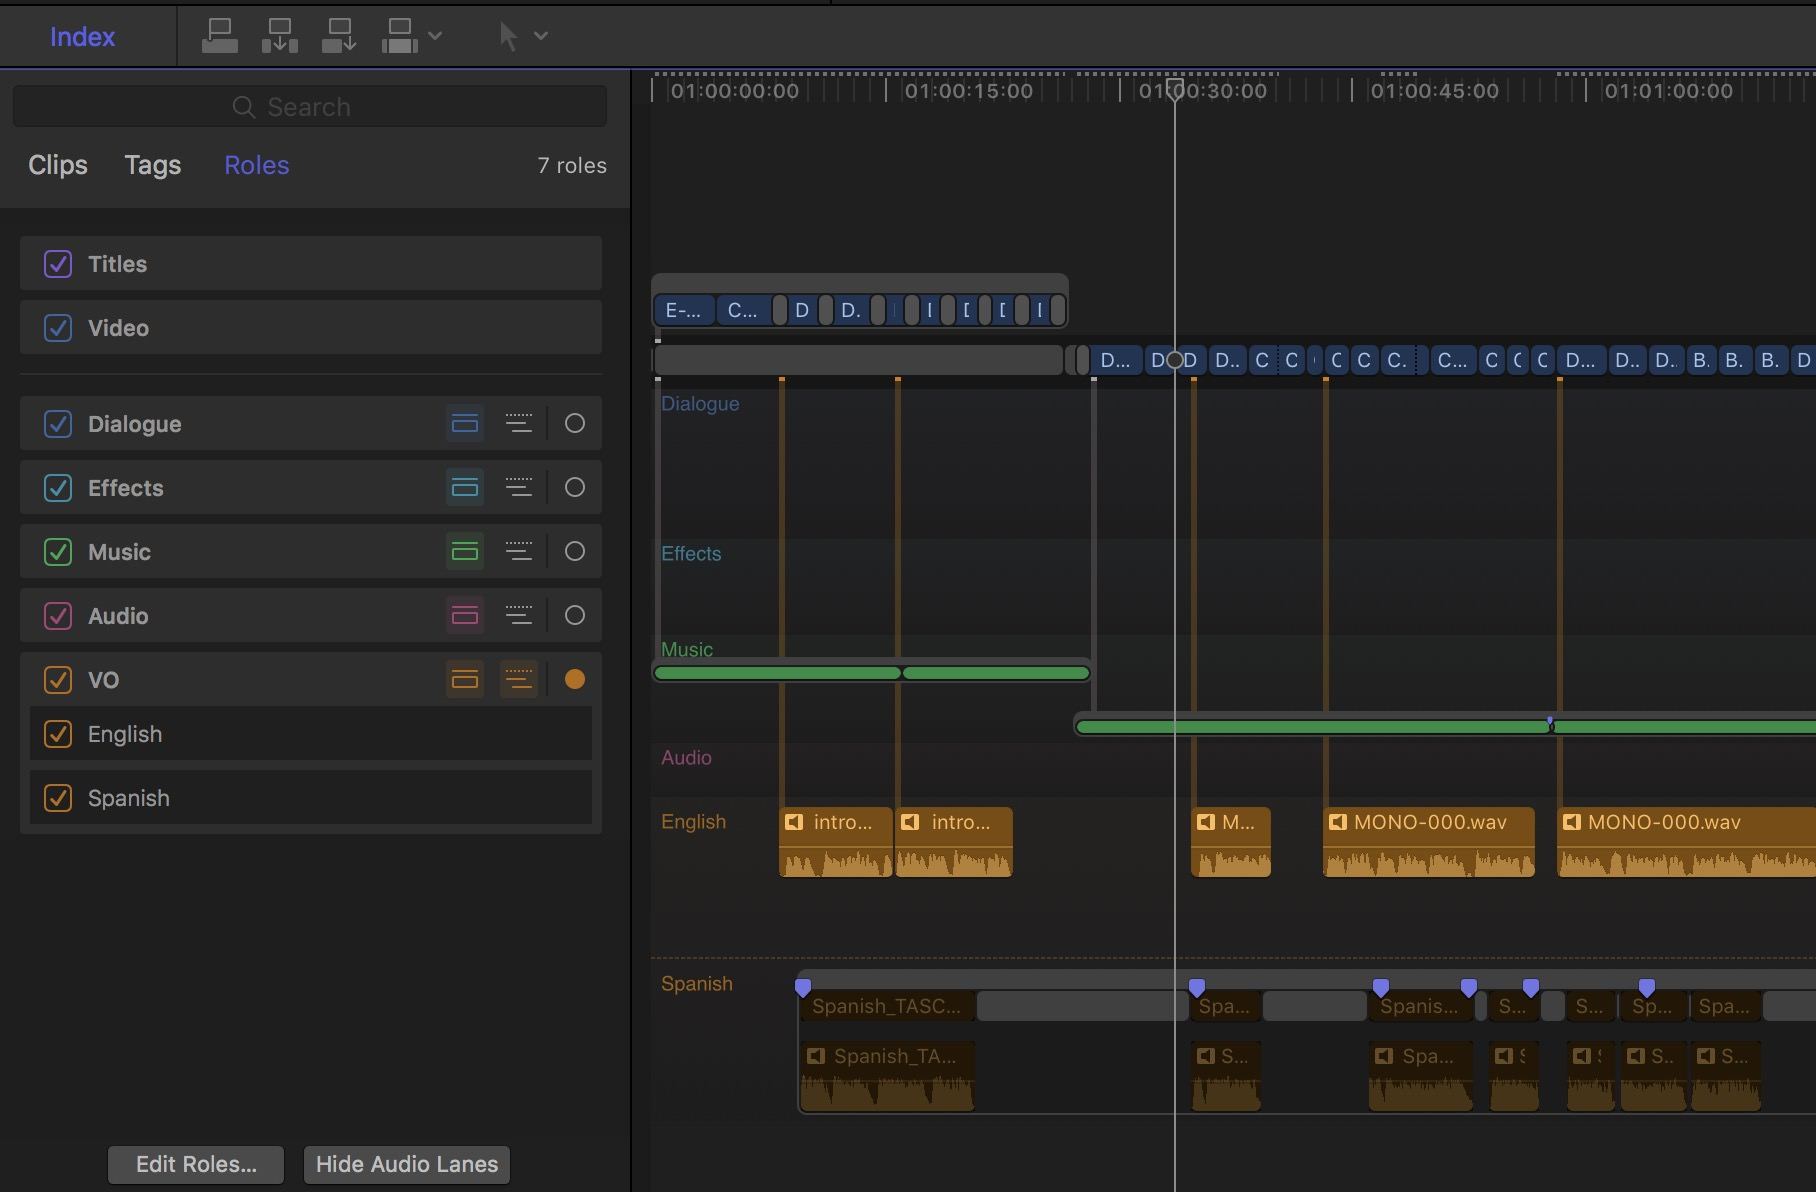 On the left you can see the Audio Roles I've assigned in this project. The VO role has two subroles, English and Spanish. On the right you can see those lanes turned on in the timeline.